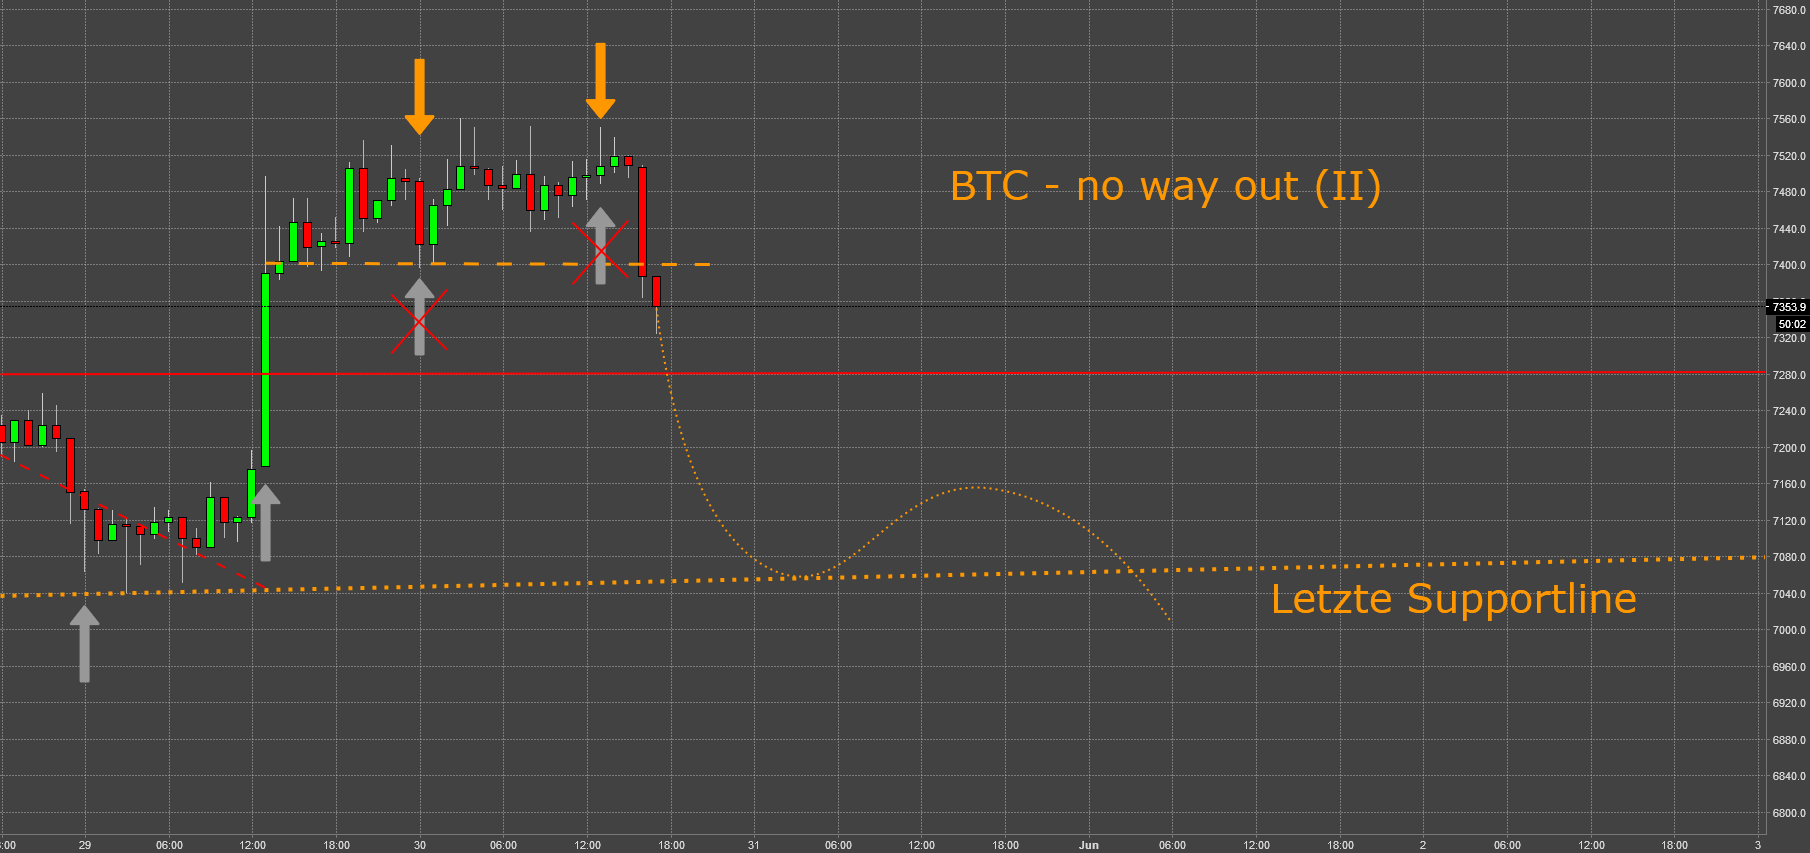 BTC - No Way Out (II)